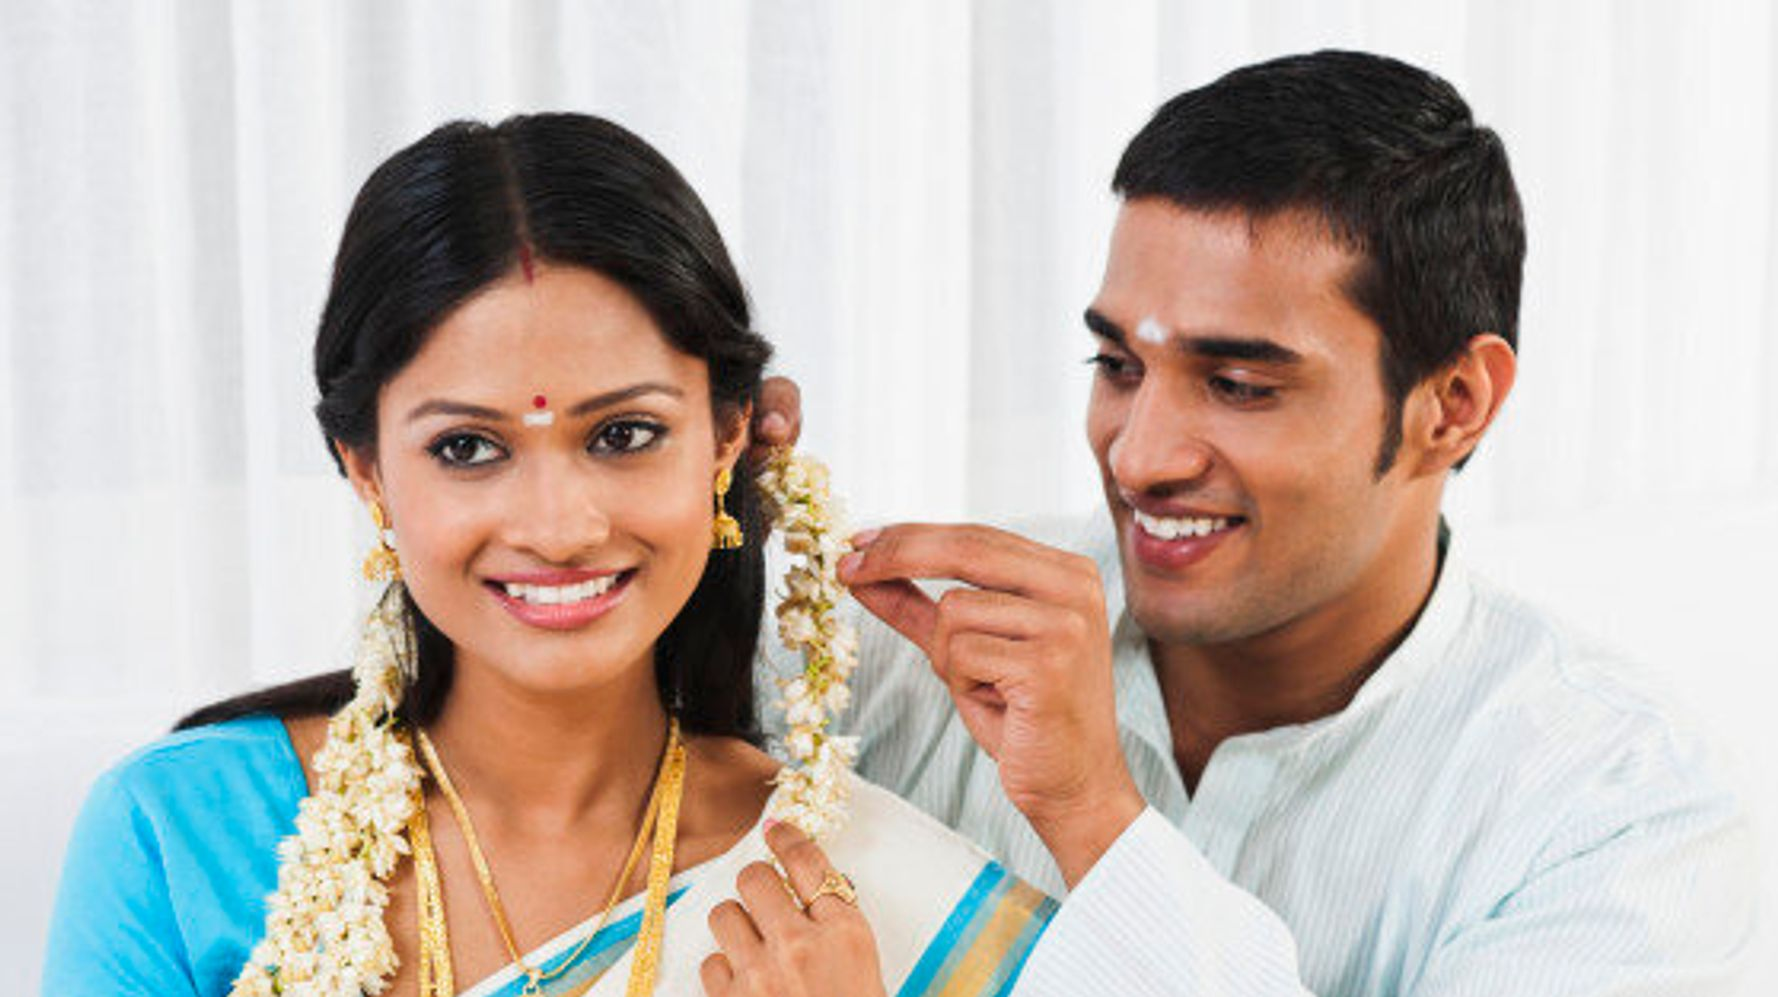 Arranged Marriages Can Be Happy Marriages Too | HuffPost